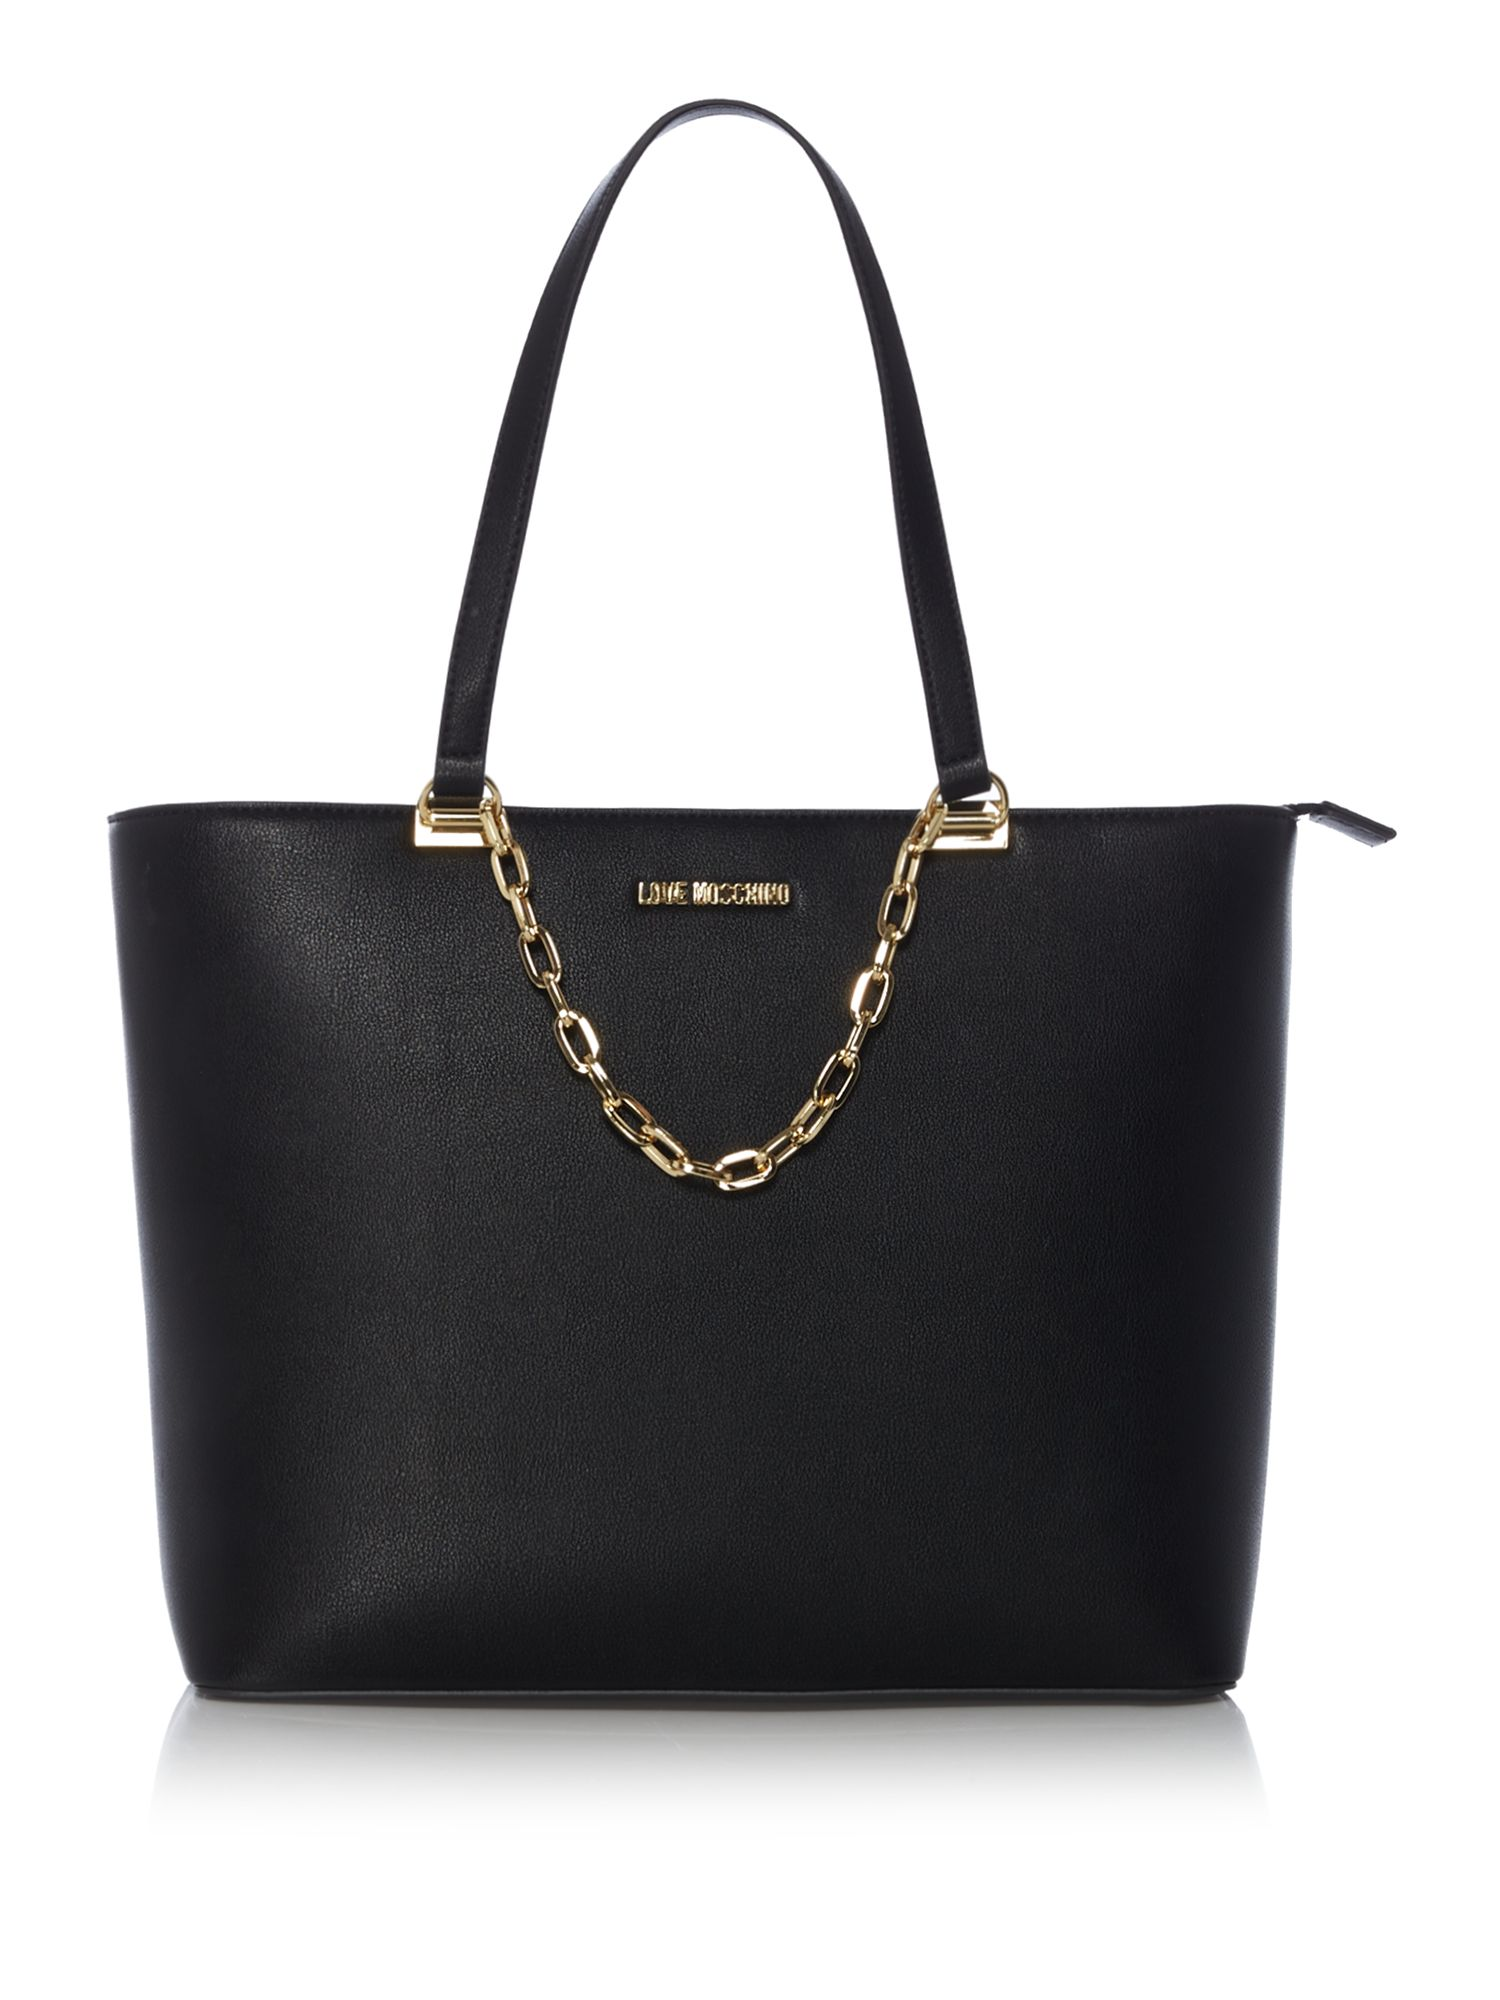 Love Moschino Gold chain large tote bag, Black